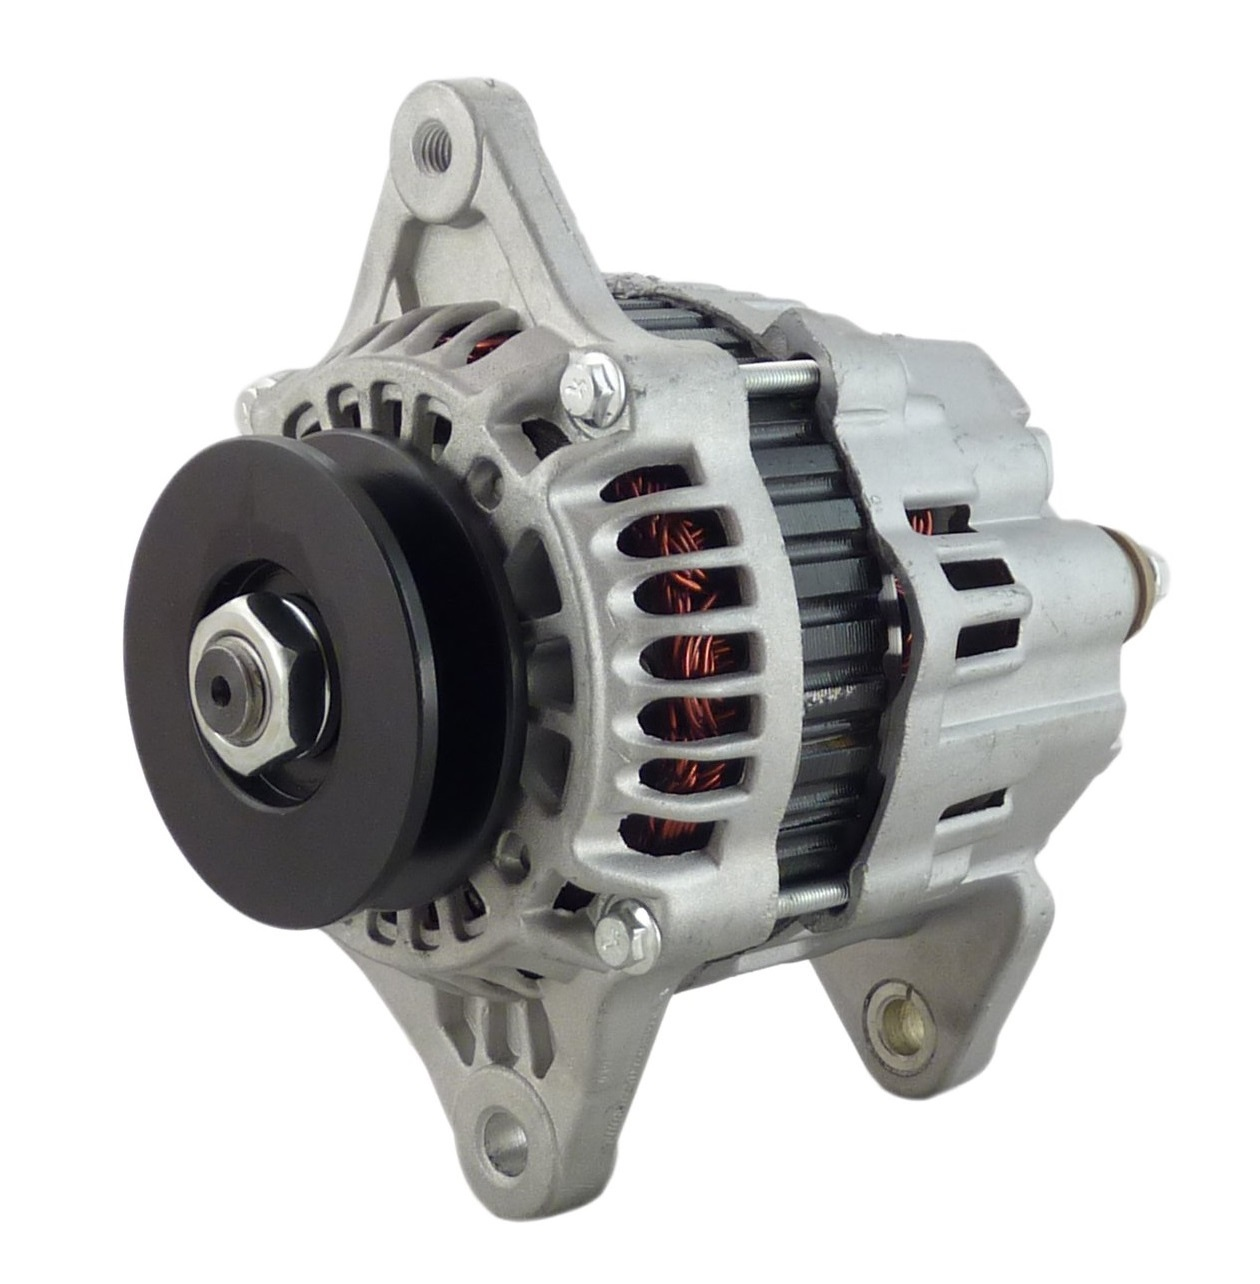 Forklift Alternator for Yale Hyster A7T03277 A7T03277A A7TA2283 7000215 1361853 1450928 3068342 3123908 800045600 S5SN-18-300 S5SN-18-300A 00591-33580-81 00591-55973-81 1500145-04 2690027-70 5059605-6